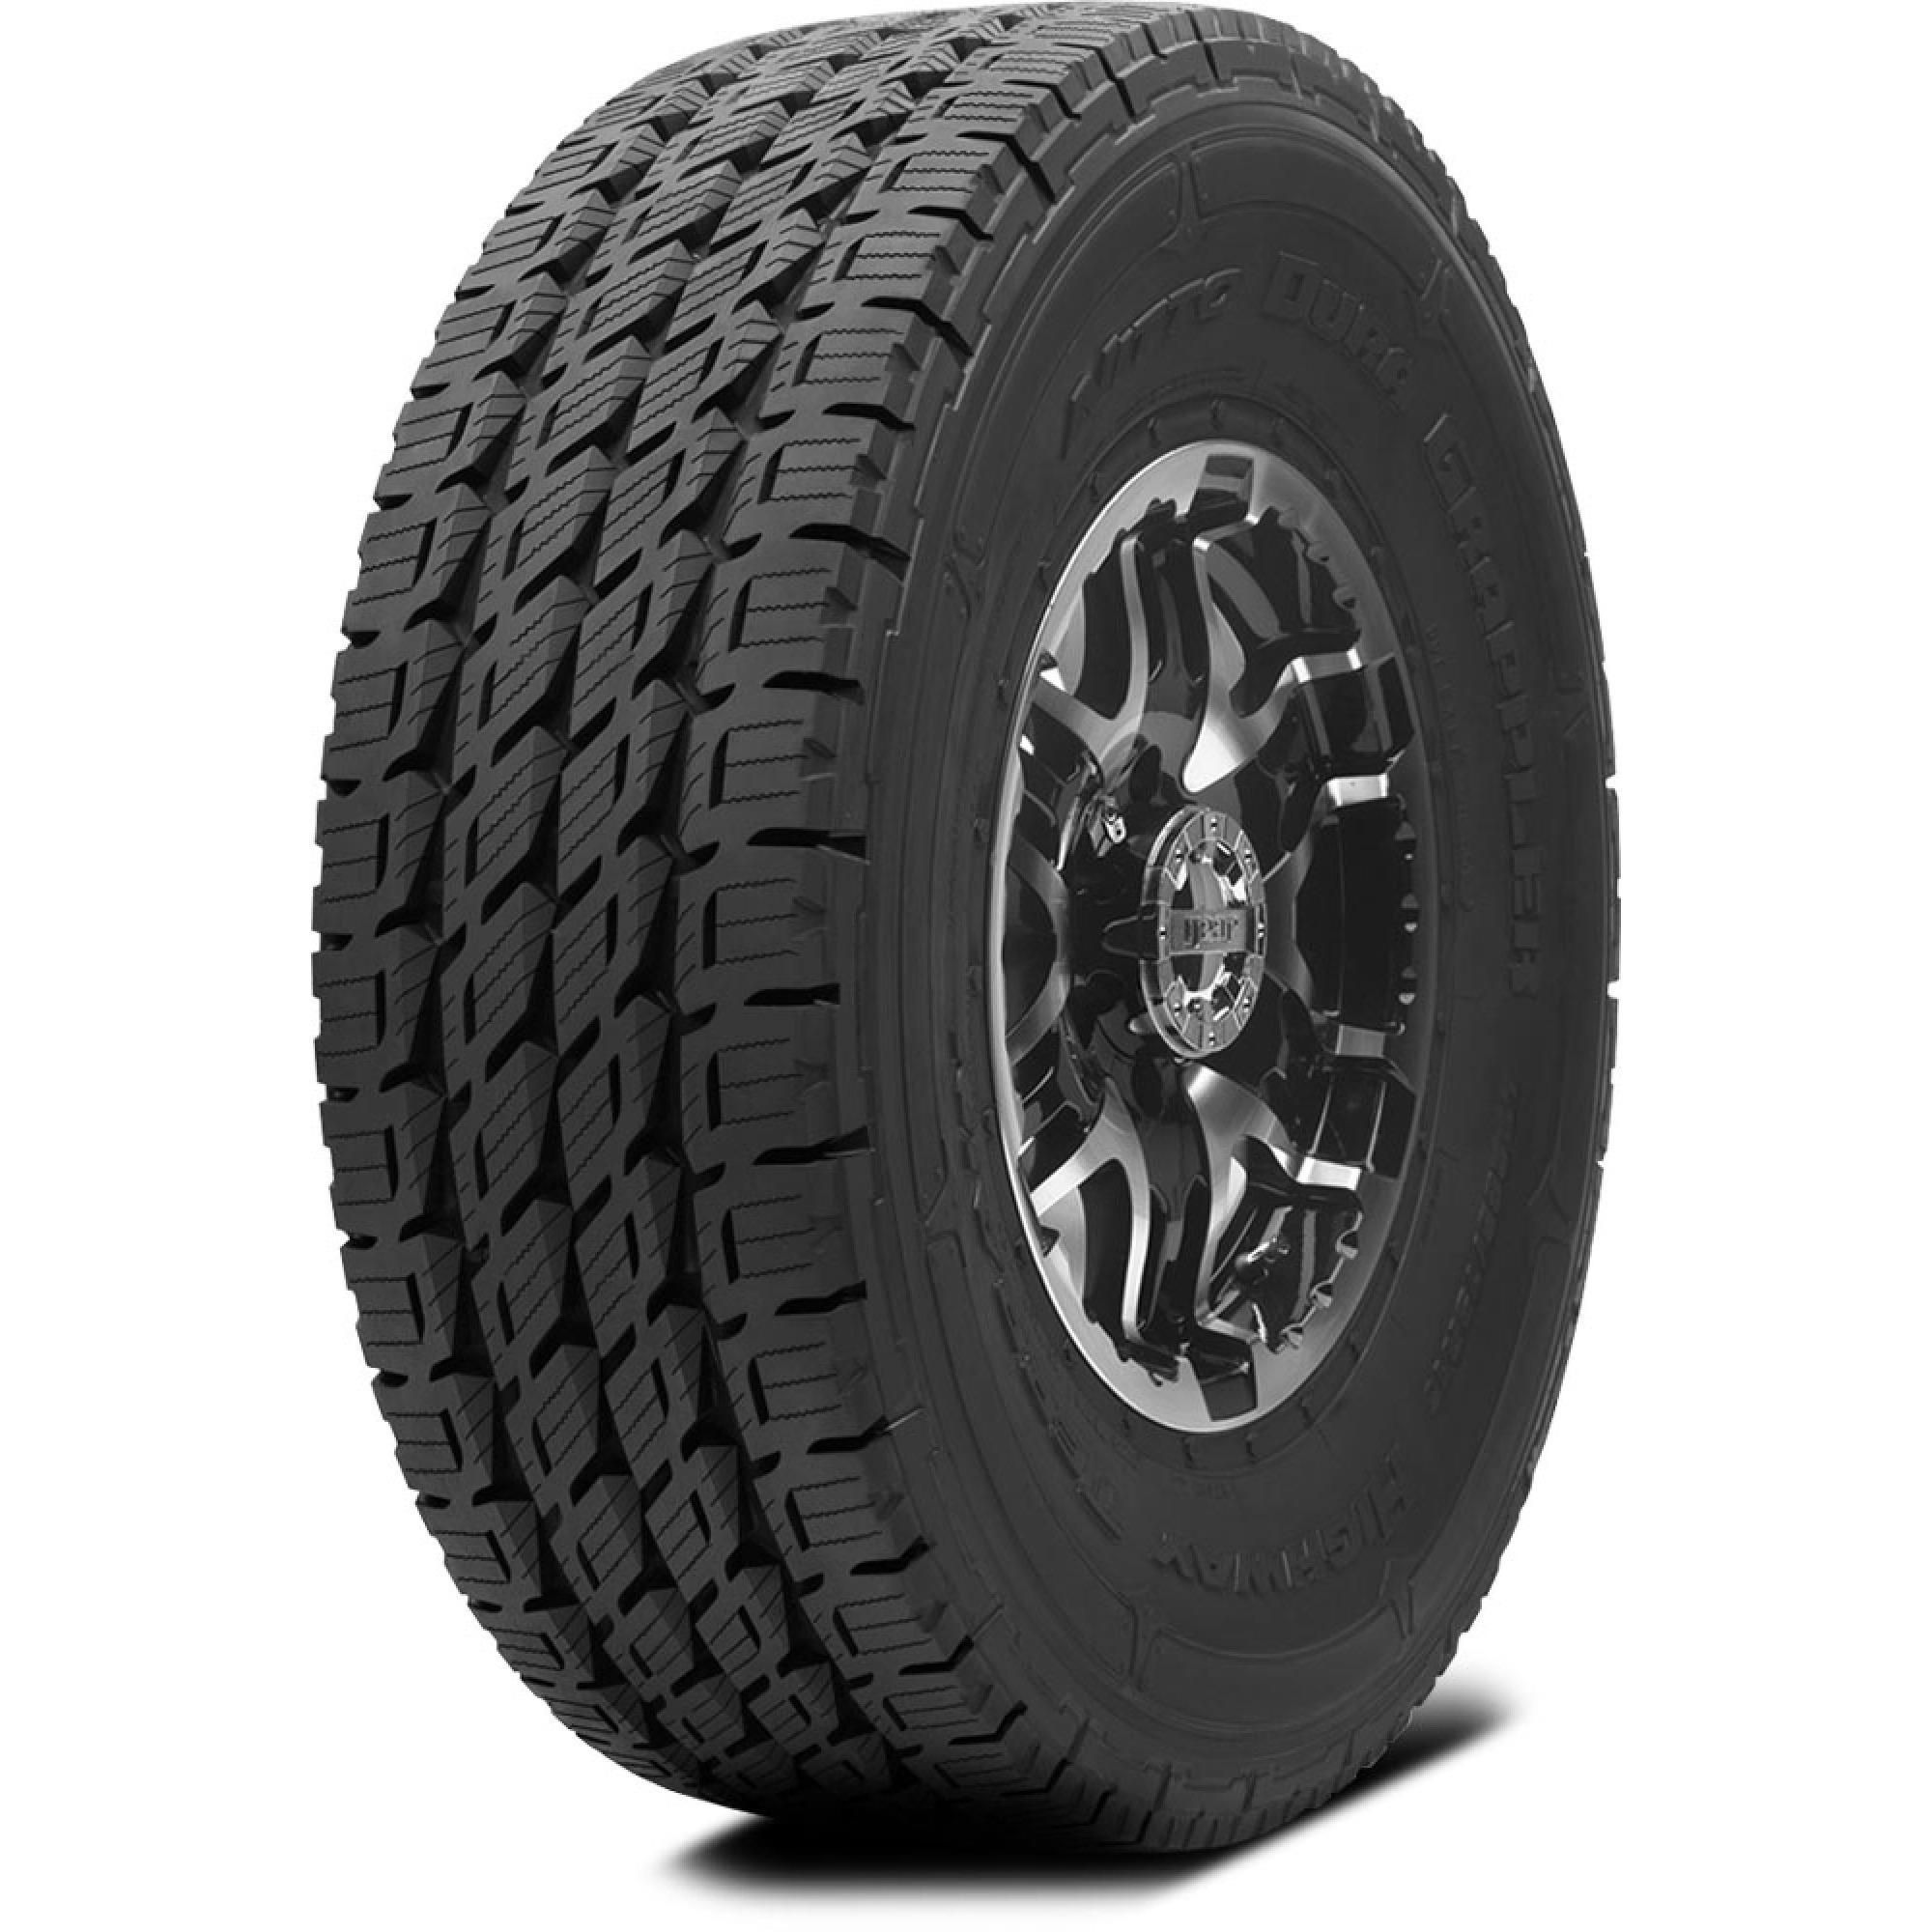 Nitto Dura Grappler H/T 275/70 R16 114H